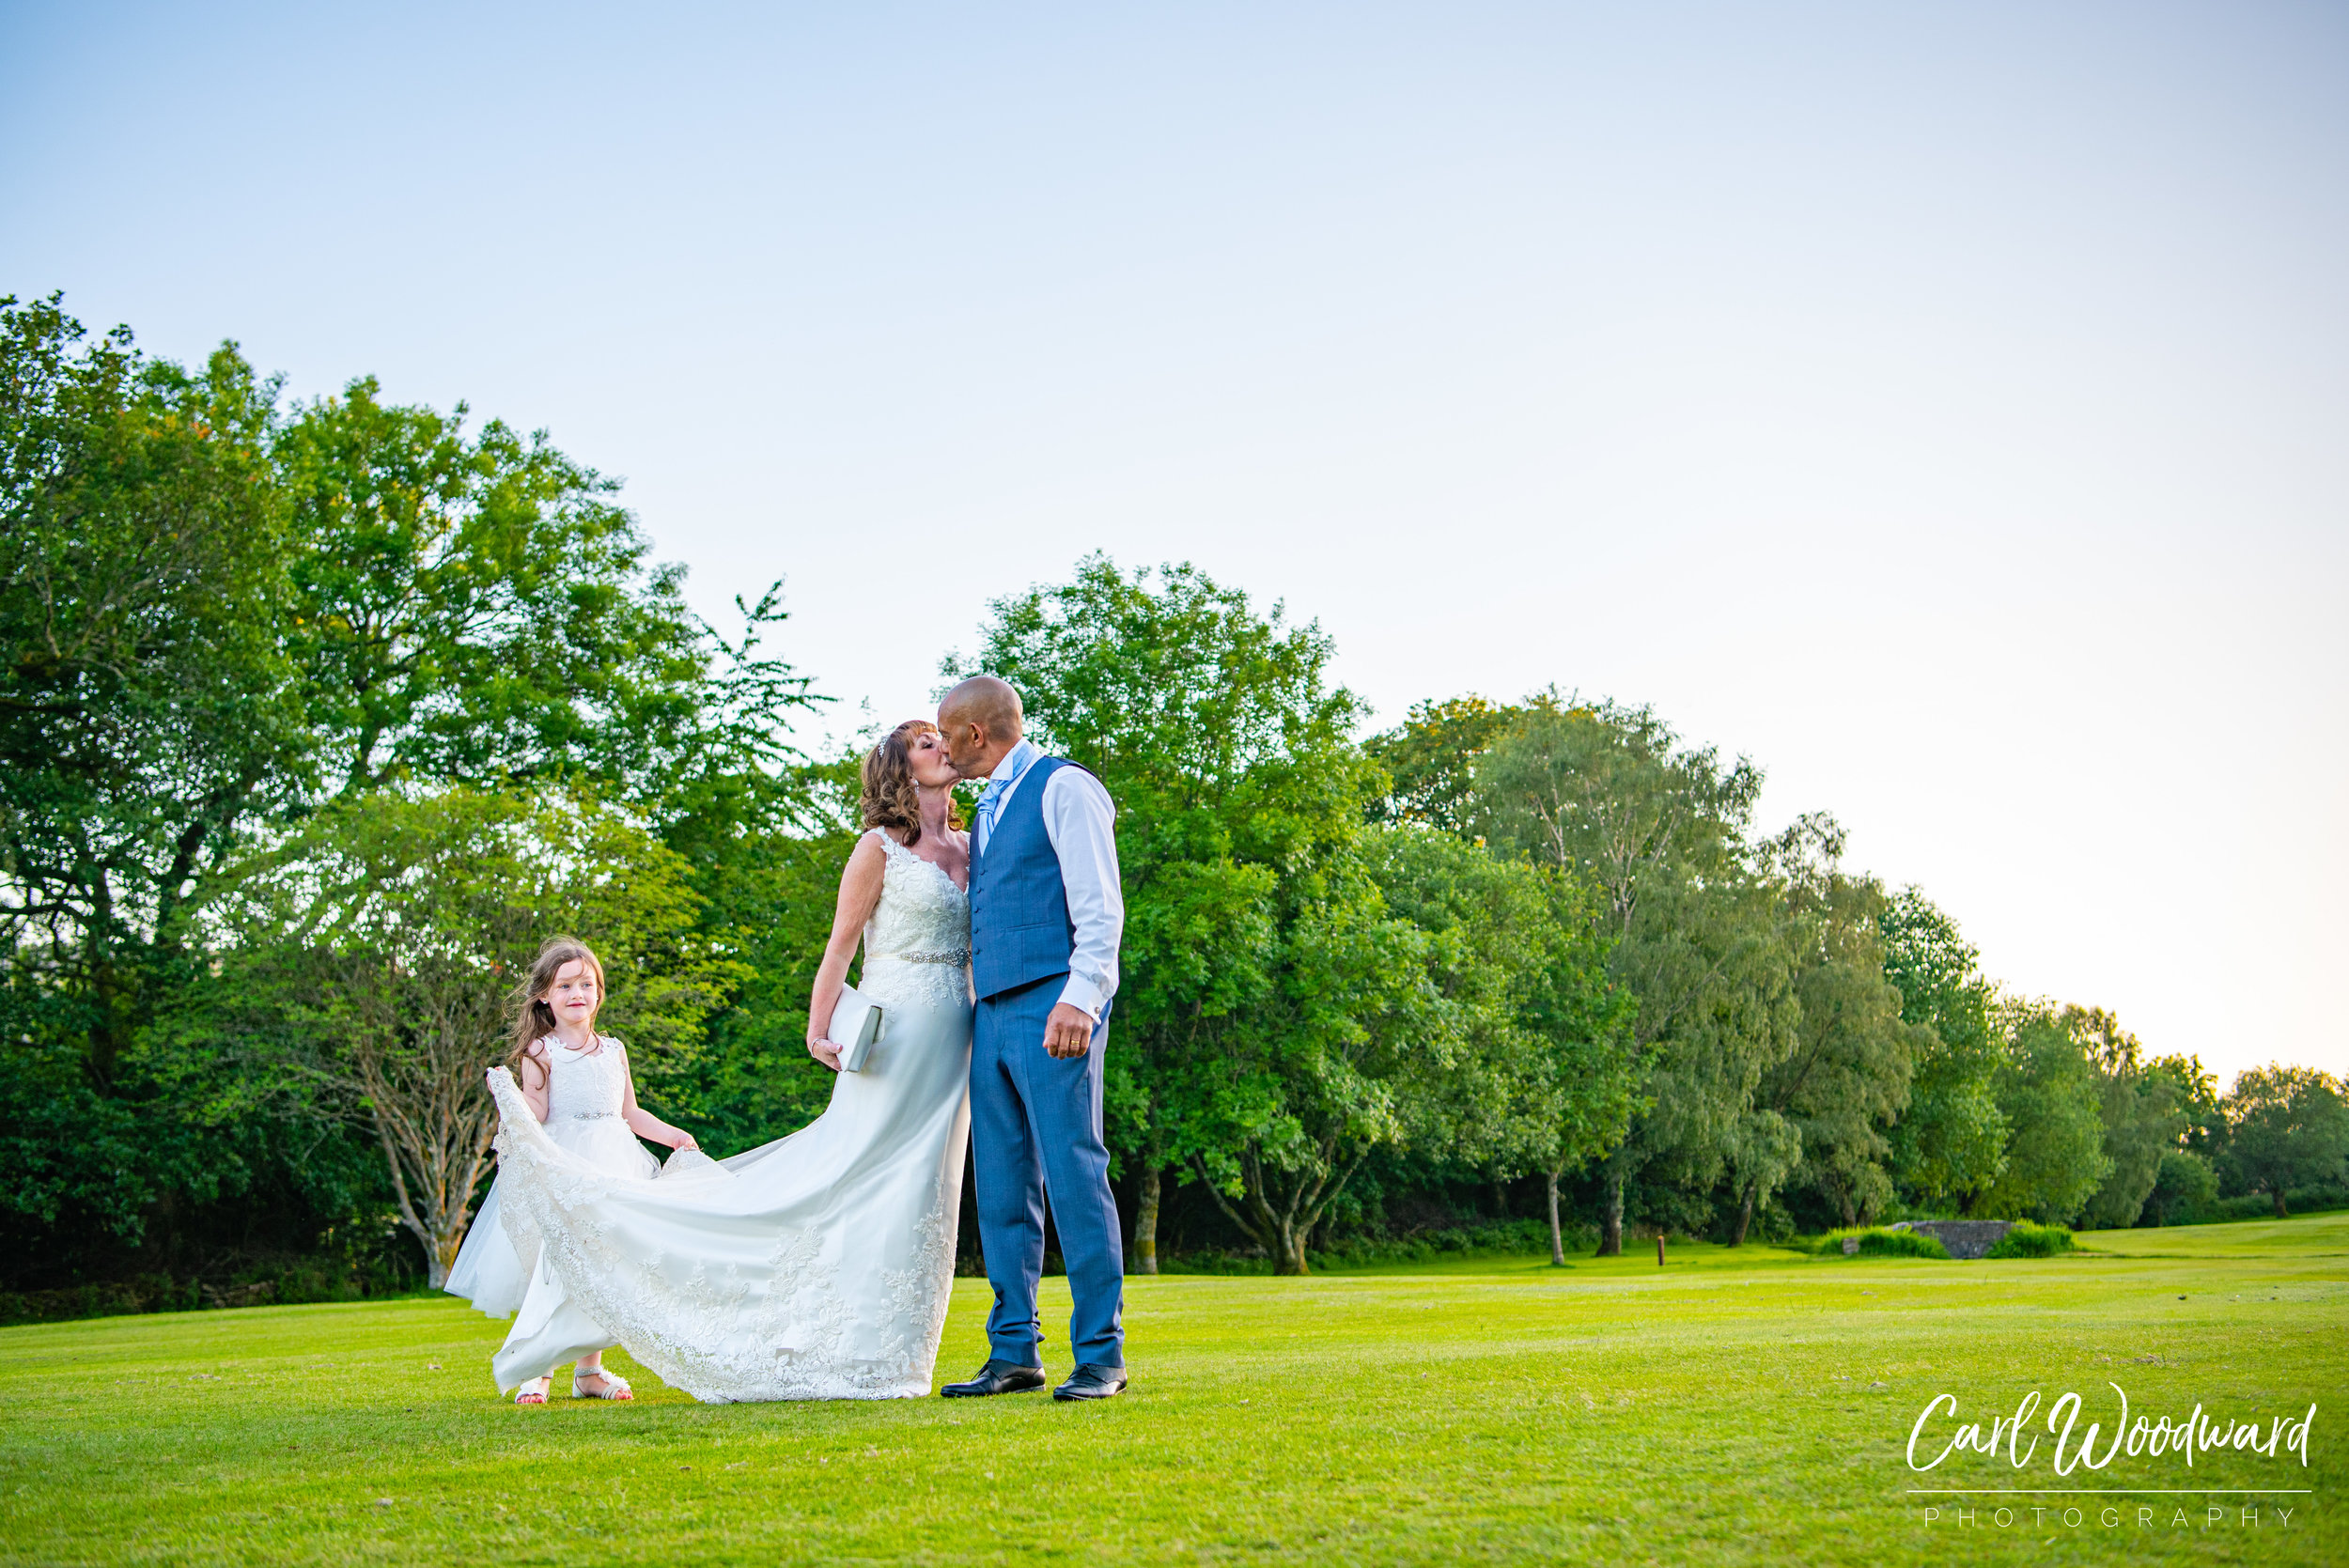 017-Mountain-Ash-Golf-Club-Wedding-Cardiff-Wedding-Photography.jpg